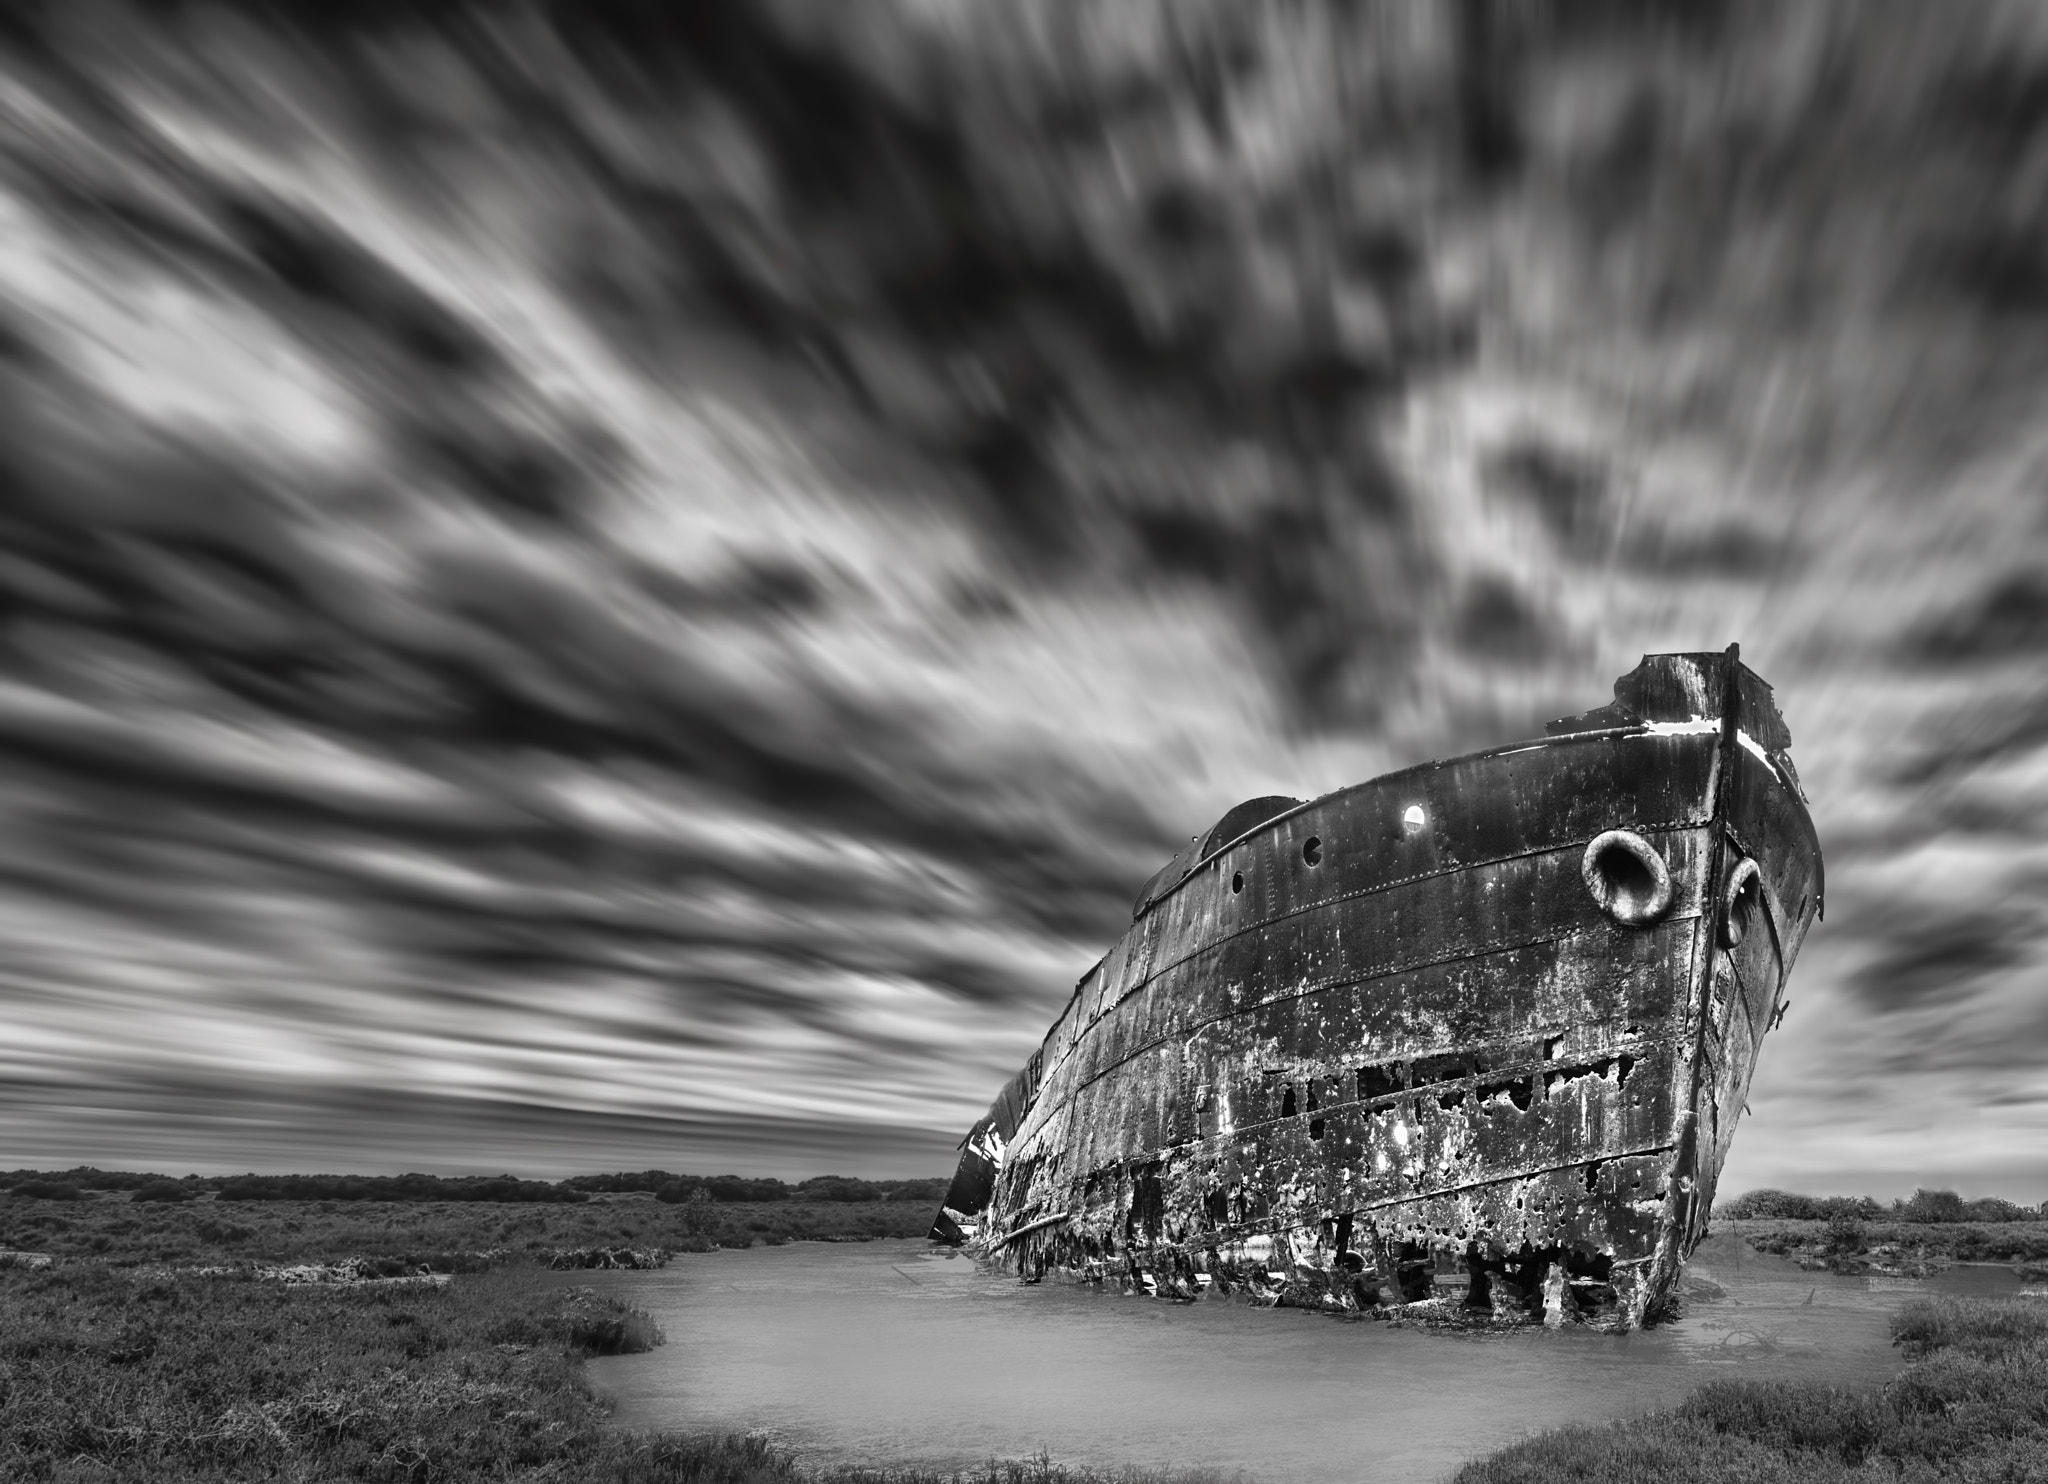 Photograph Excelsior: Wrecke by Bipphy Kath on 500px